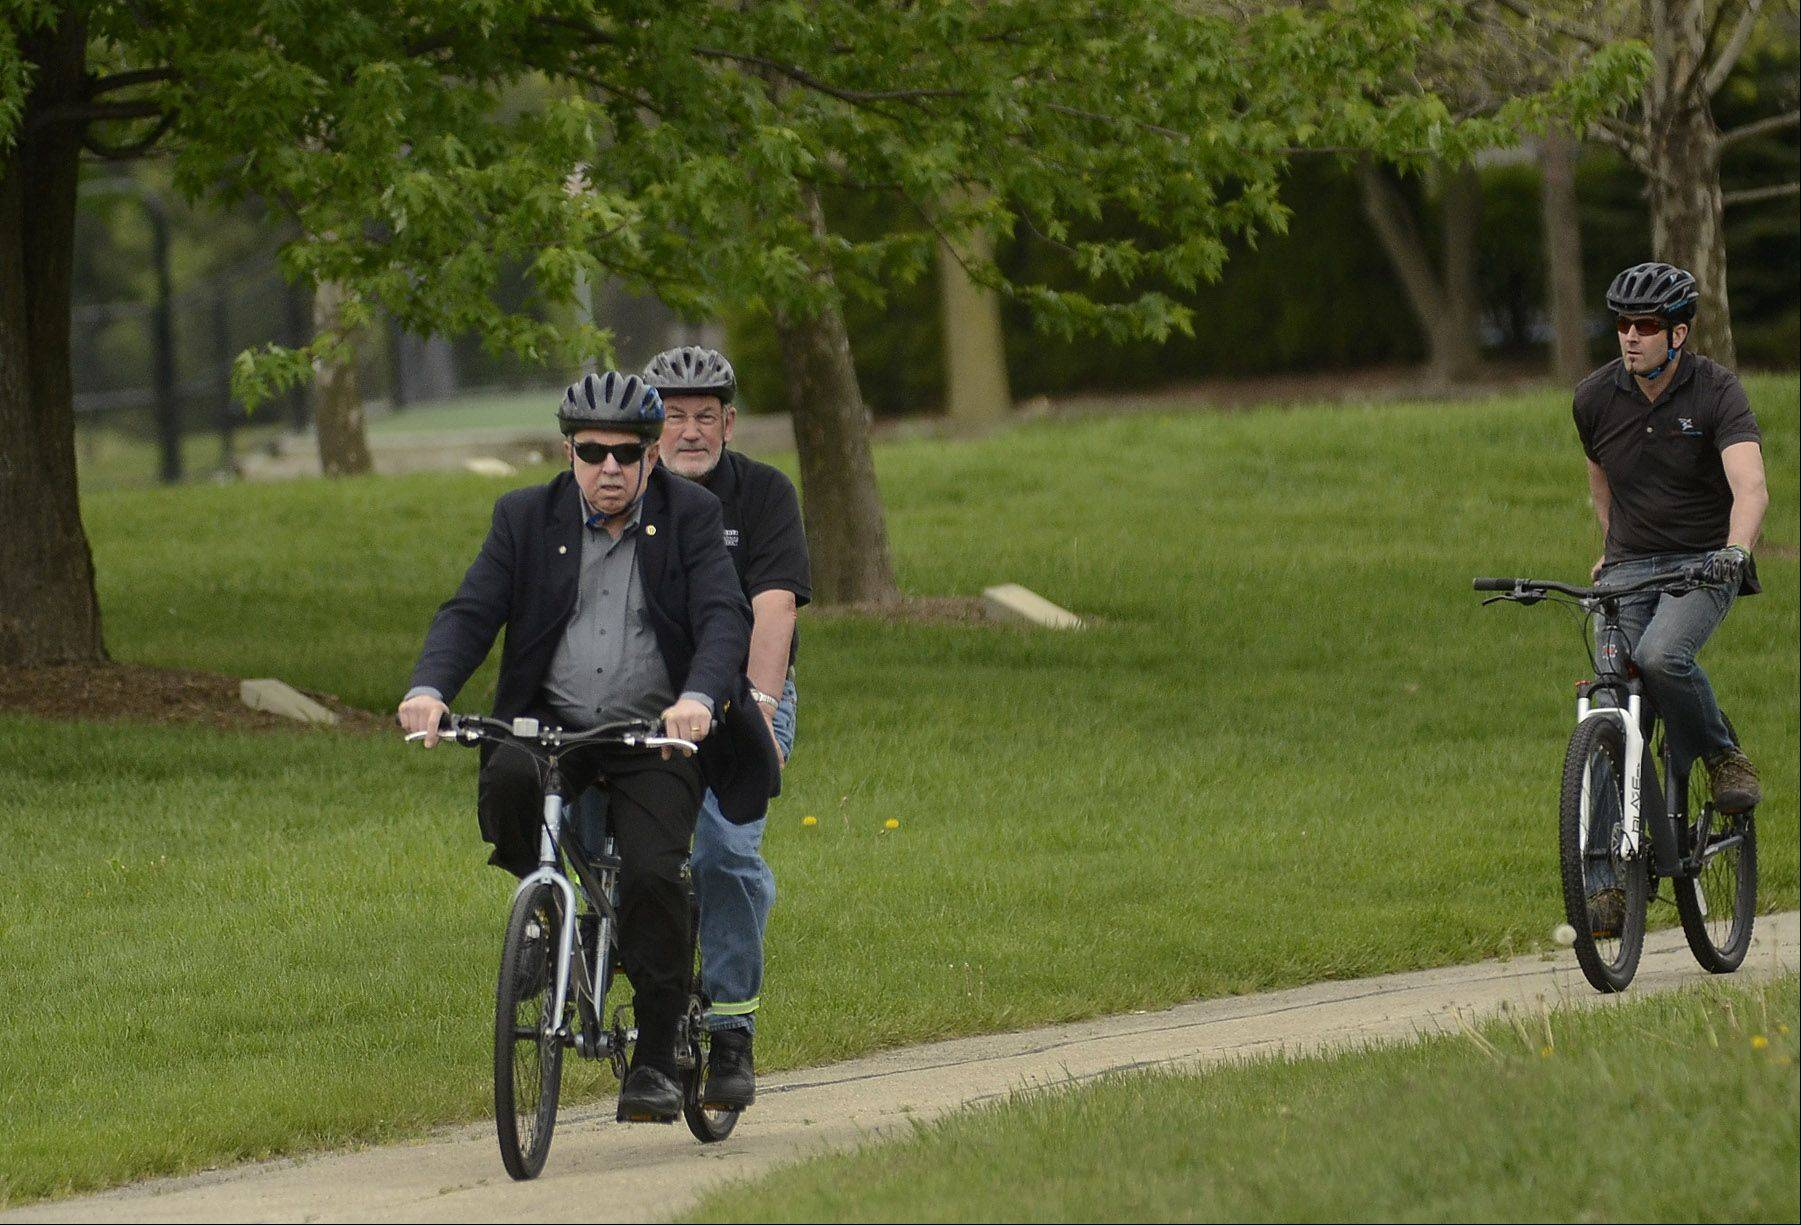 Schaumburg Mayor Al Larson and Schaumburg Park District Commissioner Bob Schmidt lead a bike ride from the Meineke Recreation Center to Larson's workplace at village hall to commemorate Bike to Work Week.